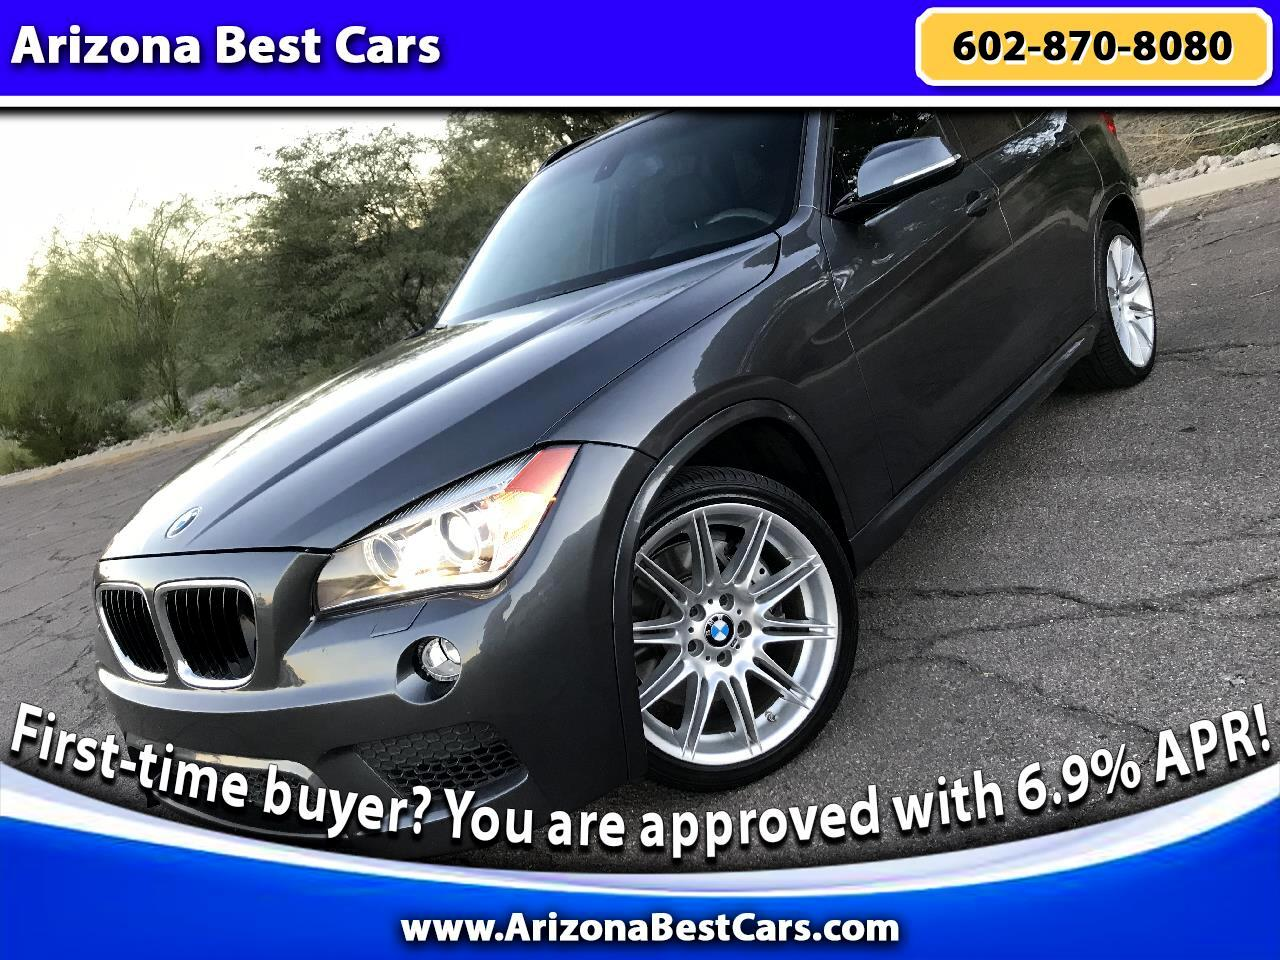 2013 BMW X1 AWD 4dr xDrive35i